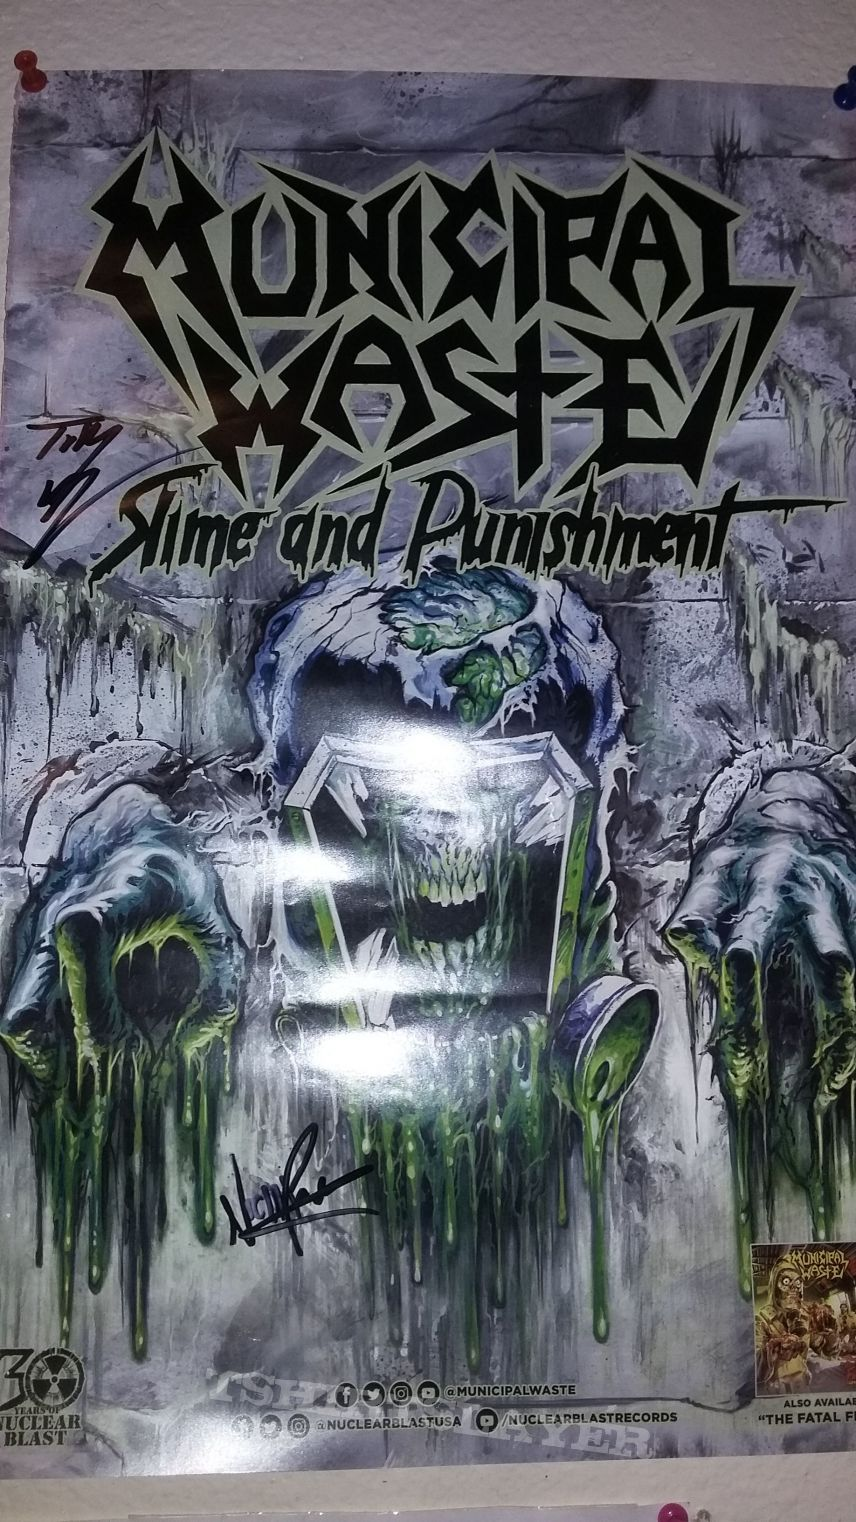 municipal waste signed poster